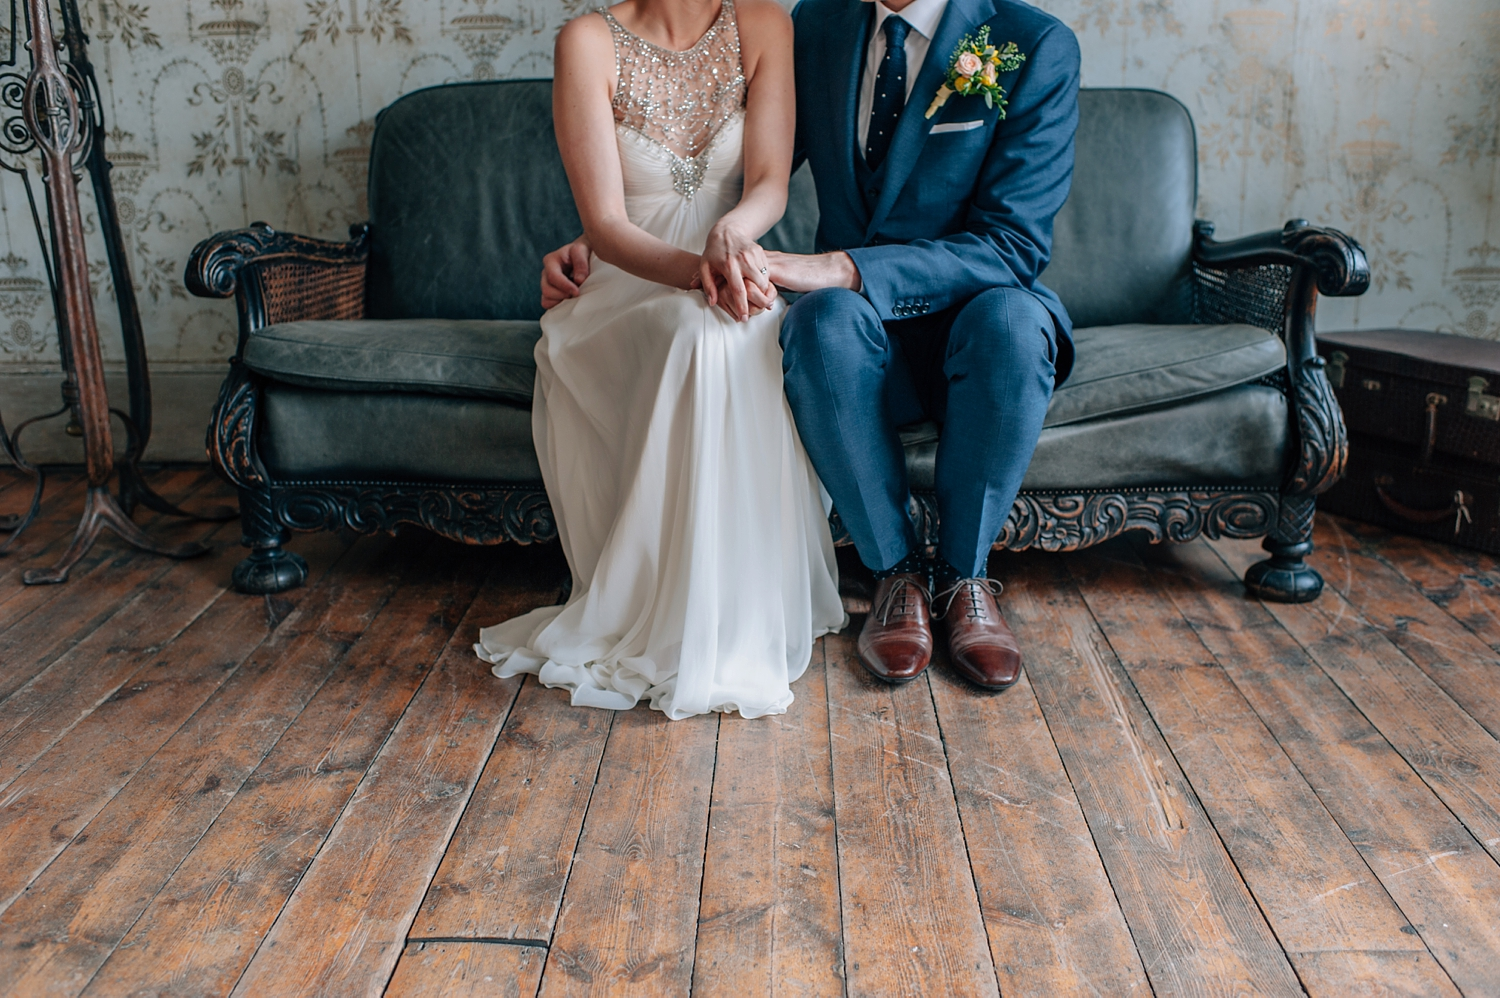 0115-lisa-devine-alternative-wedding-photography-london-hackney-dalston-london-photography-townhall-hotel.JPG